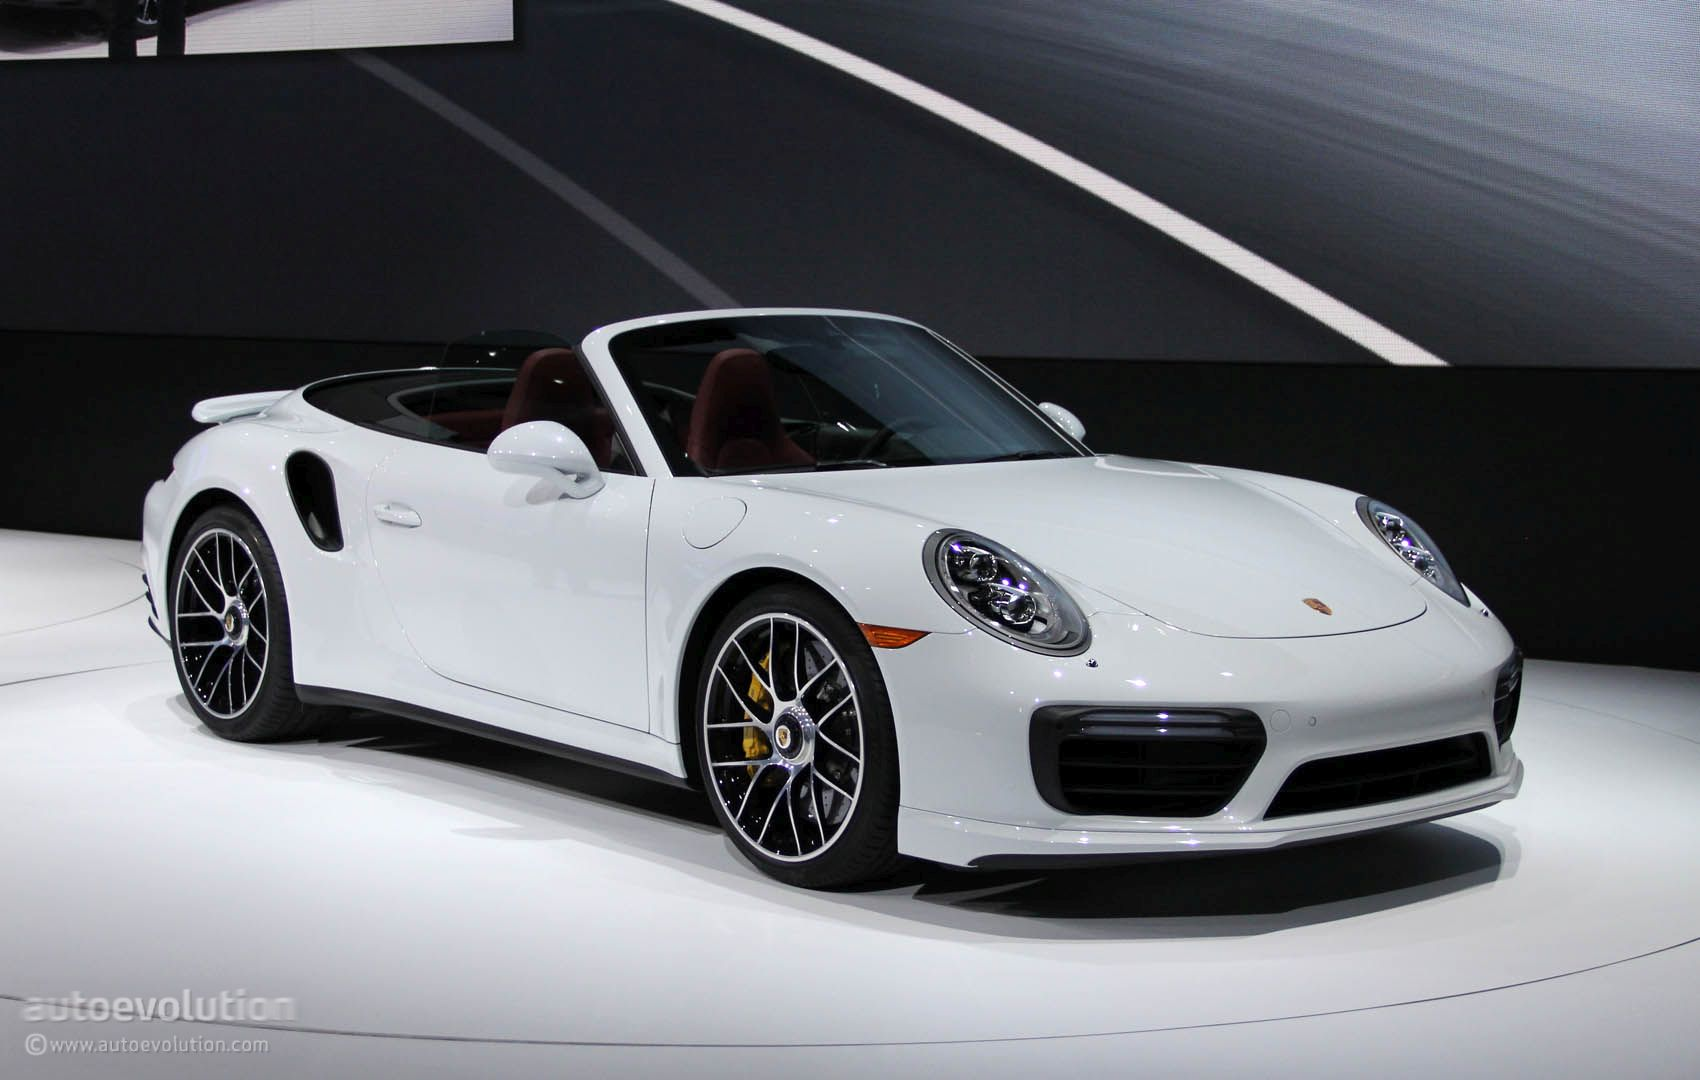 2016 Porsche Panamera Gts >> A Porsche 911 Plug-In Hybrid Might Be Coming, but No Sooner than 2020 - autoevolution